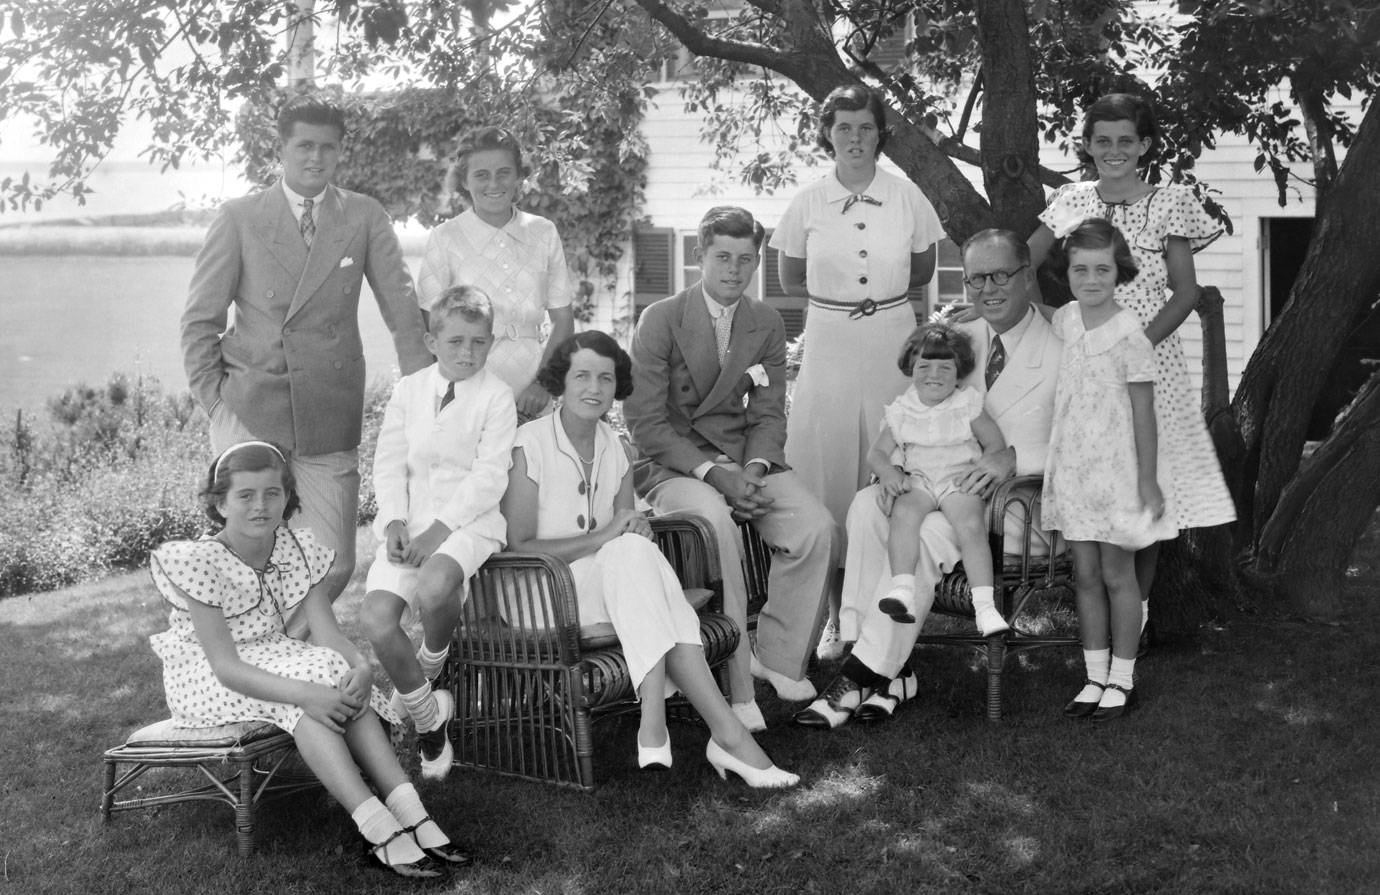 buddhist single men in hyannis port The property does not belong to the kennedys - although max lives elsewhere in hyannis port it is a nine-bedroom rental home known as the 'judy garland house' after the actress, who used to spend.